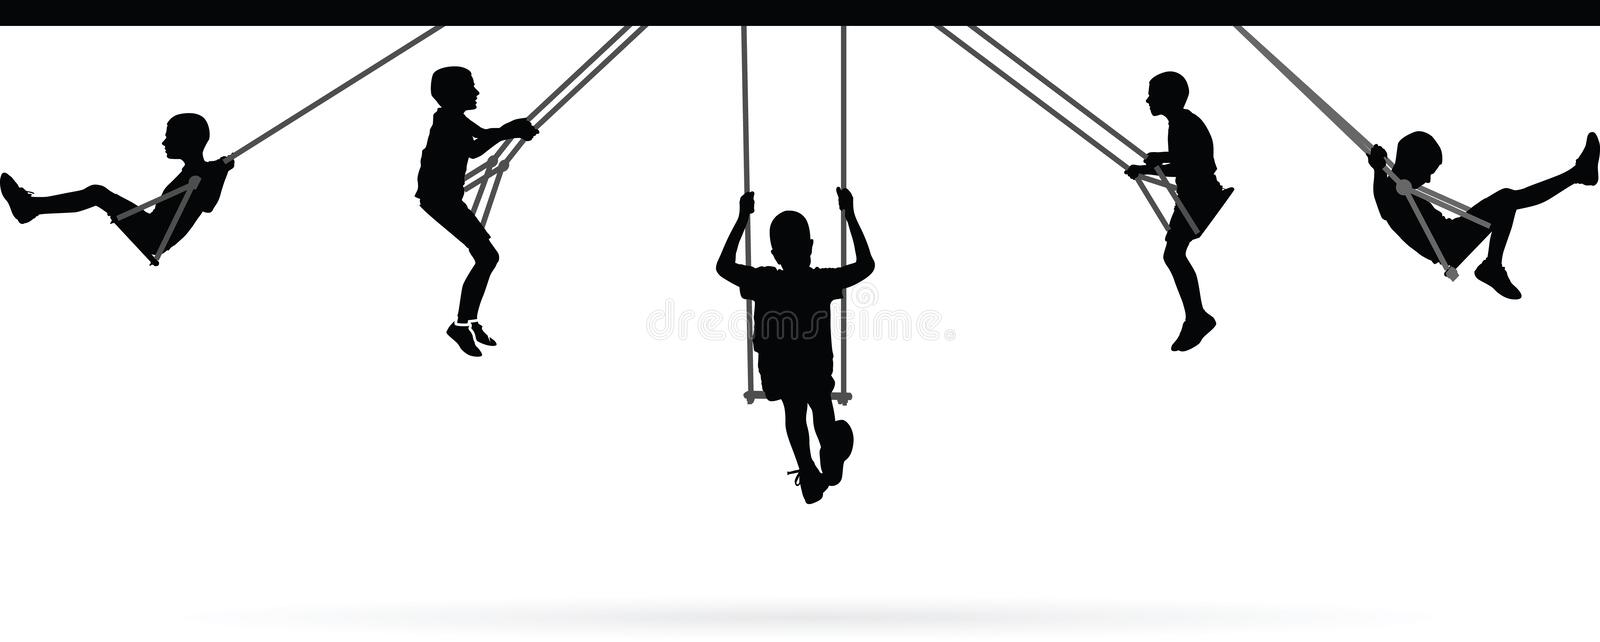 Boy swinging on swing collection royalty free illustration